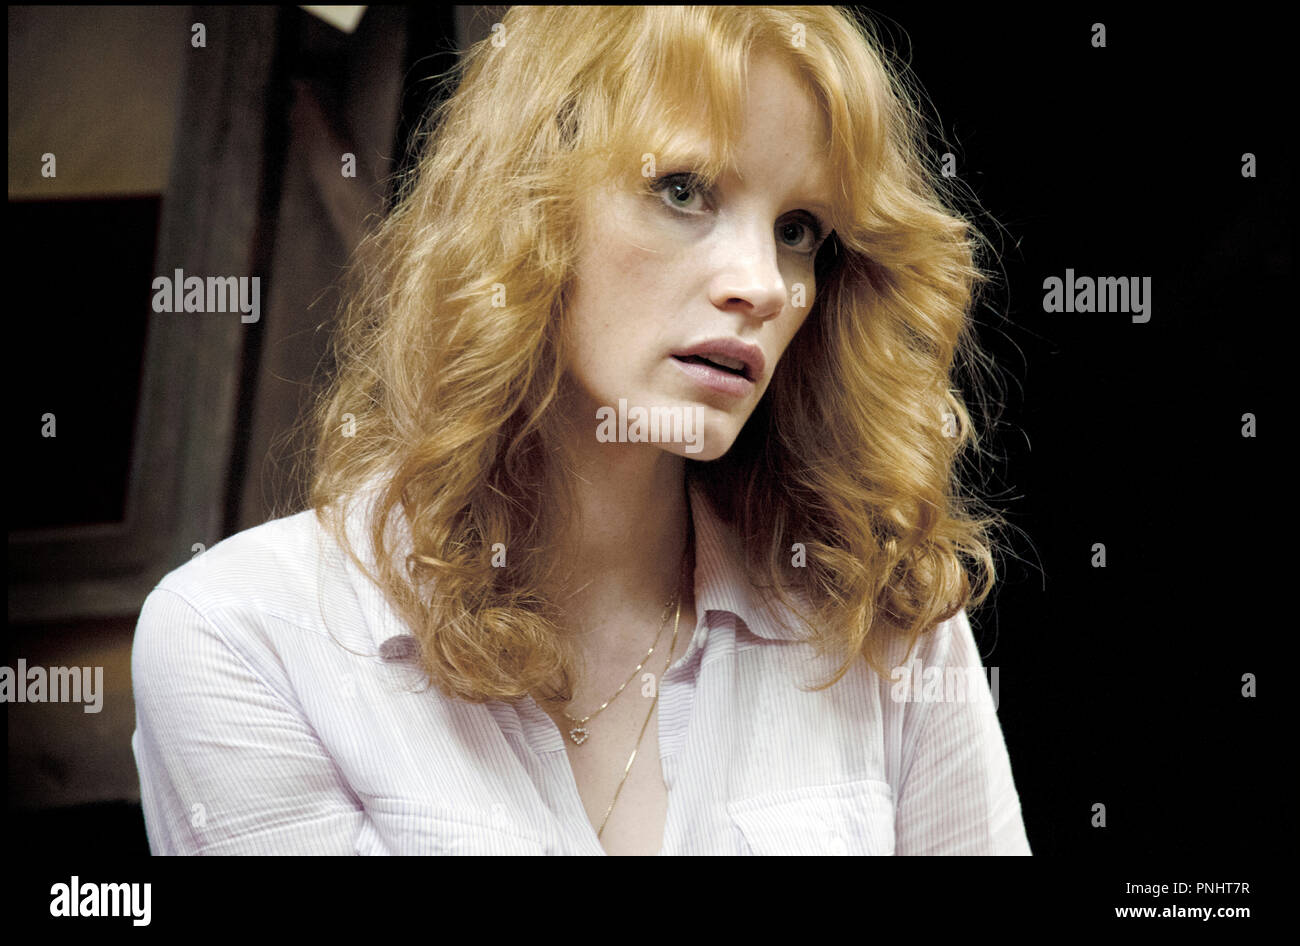 Prod DB © Forward Pass - Gideon Productions - Infinity Media / DR KILLING FIELDS (TEXAS KILLING FIELDS) de Ami Canaan Mann 2011 USA avec Jessica Chastain tiré d'une histoire vraie, polar, thriller - Stock Image